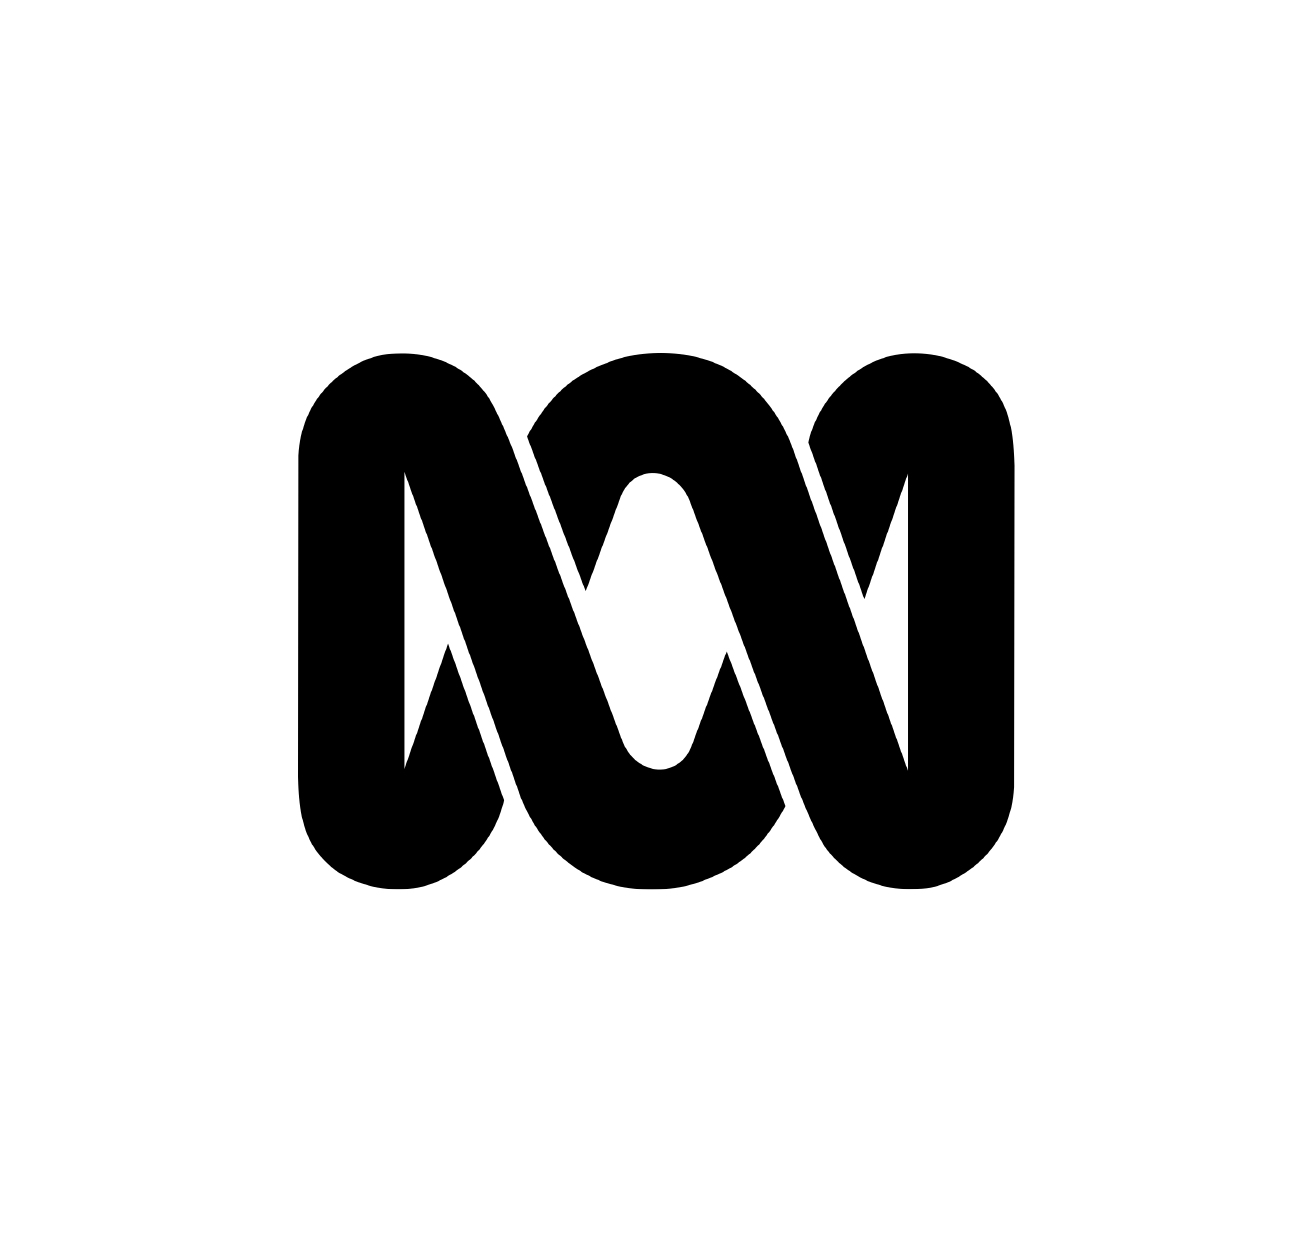 abc-03.png